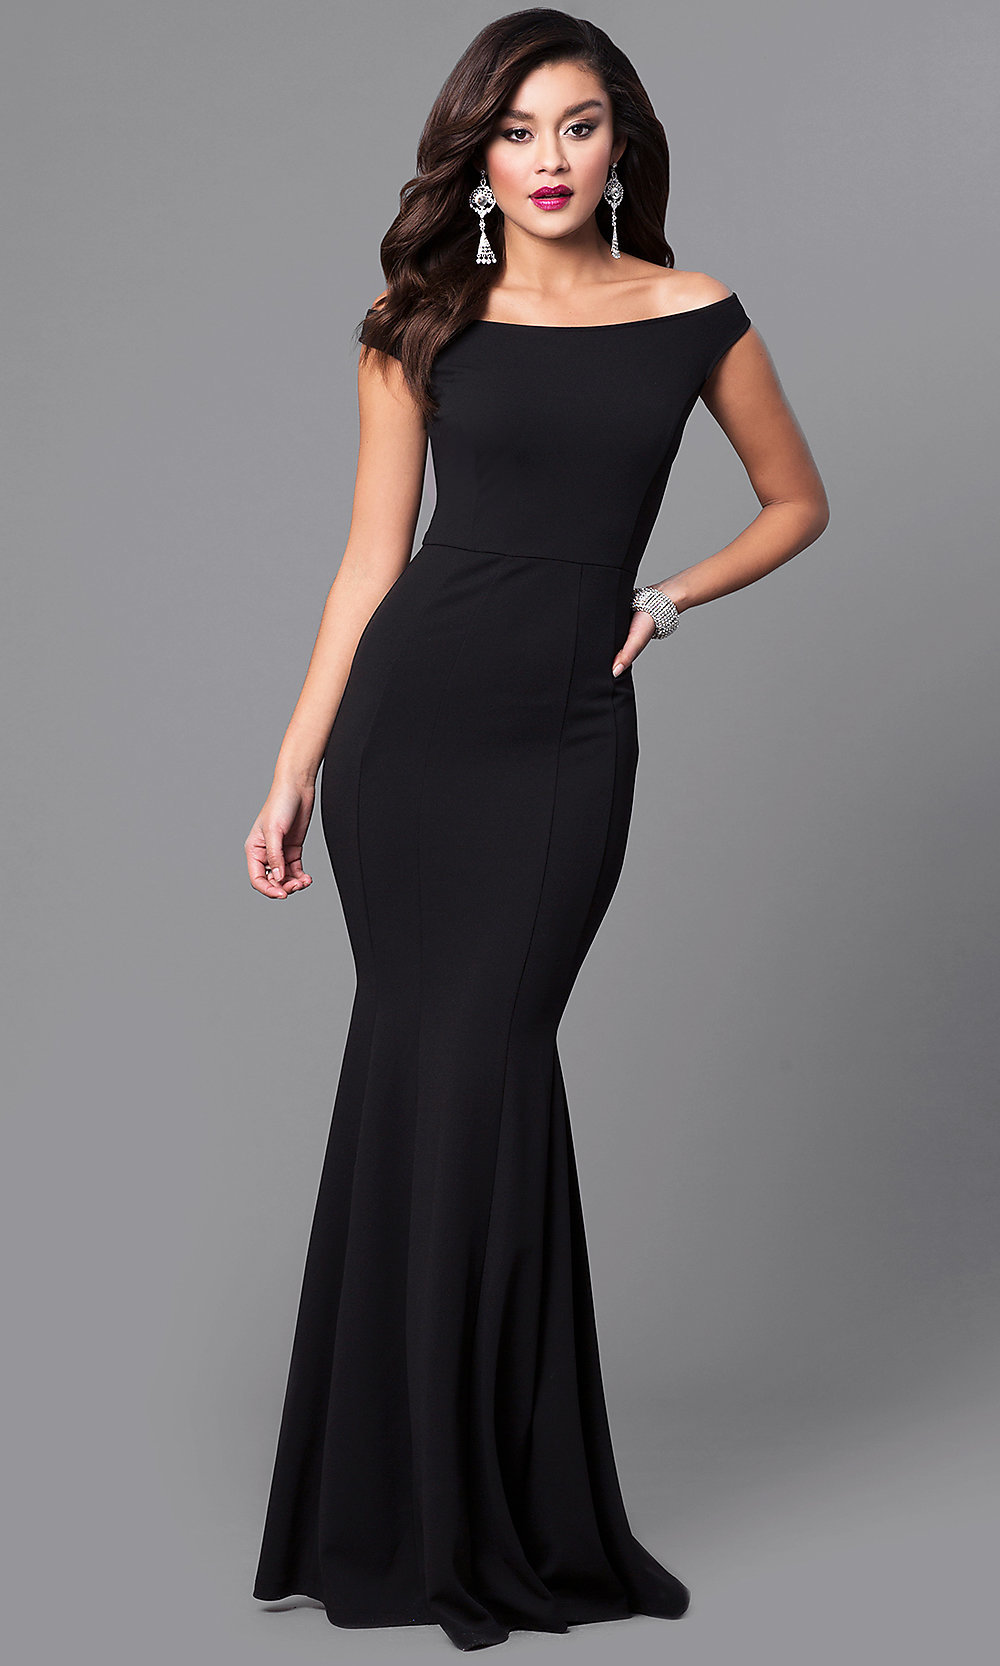 Black Off,the,Shoulder Long Mermaid Prom Dress